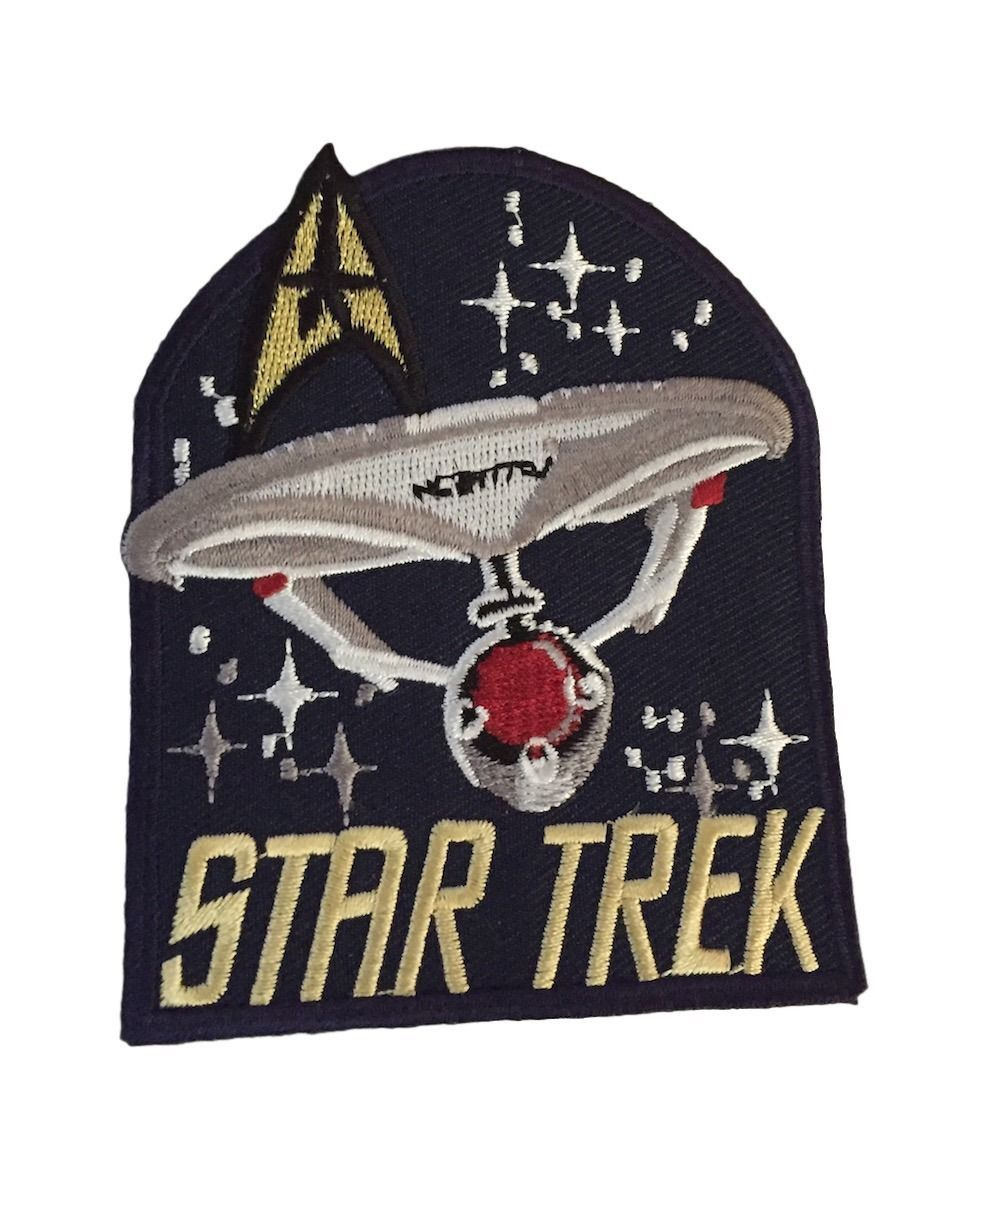 Star Trek Classic Logo Ship And Command Symbol All In One